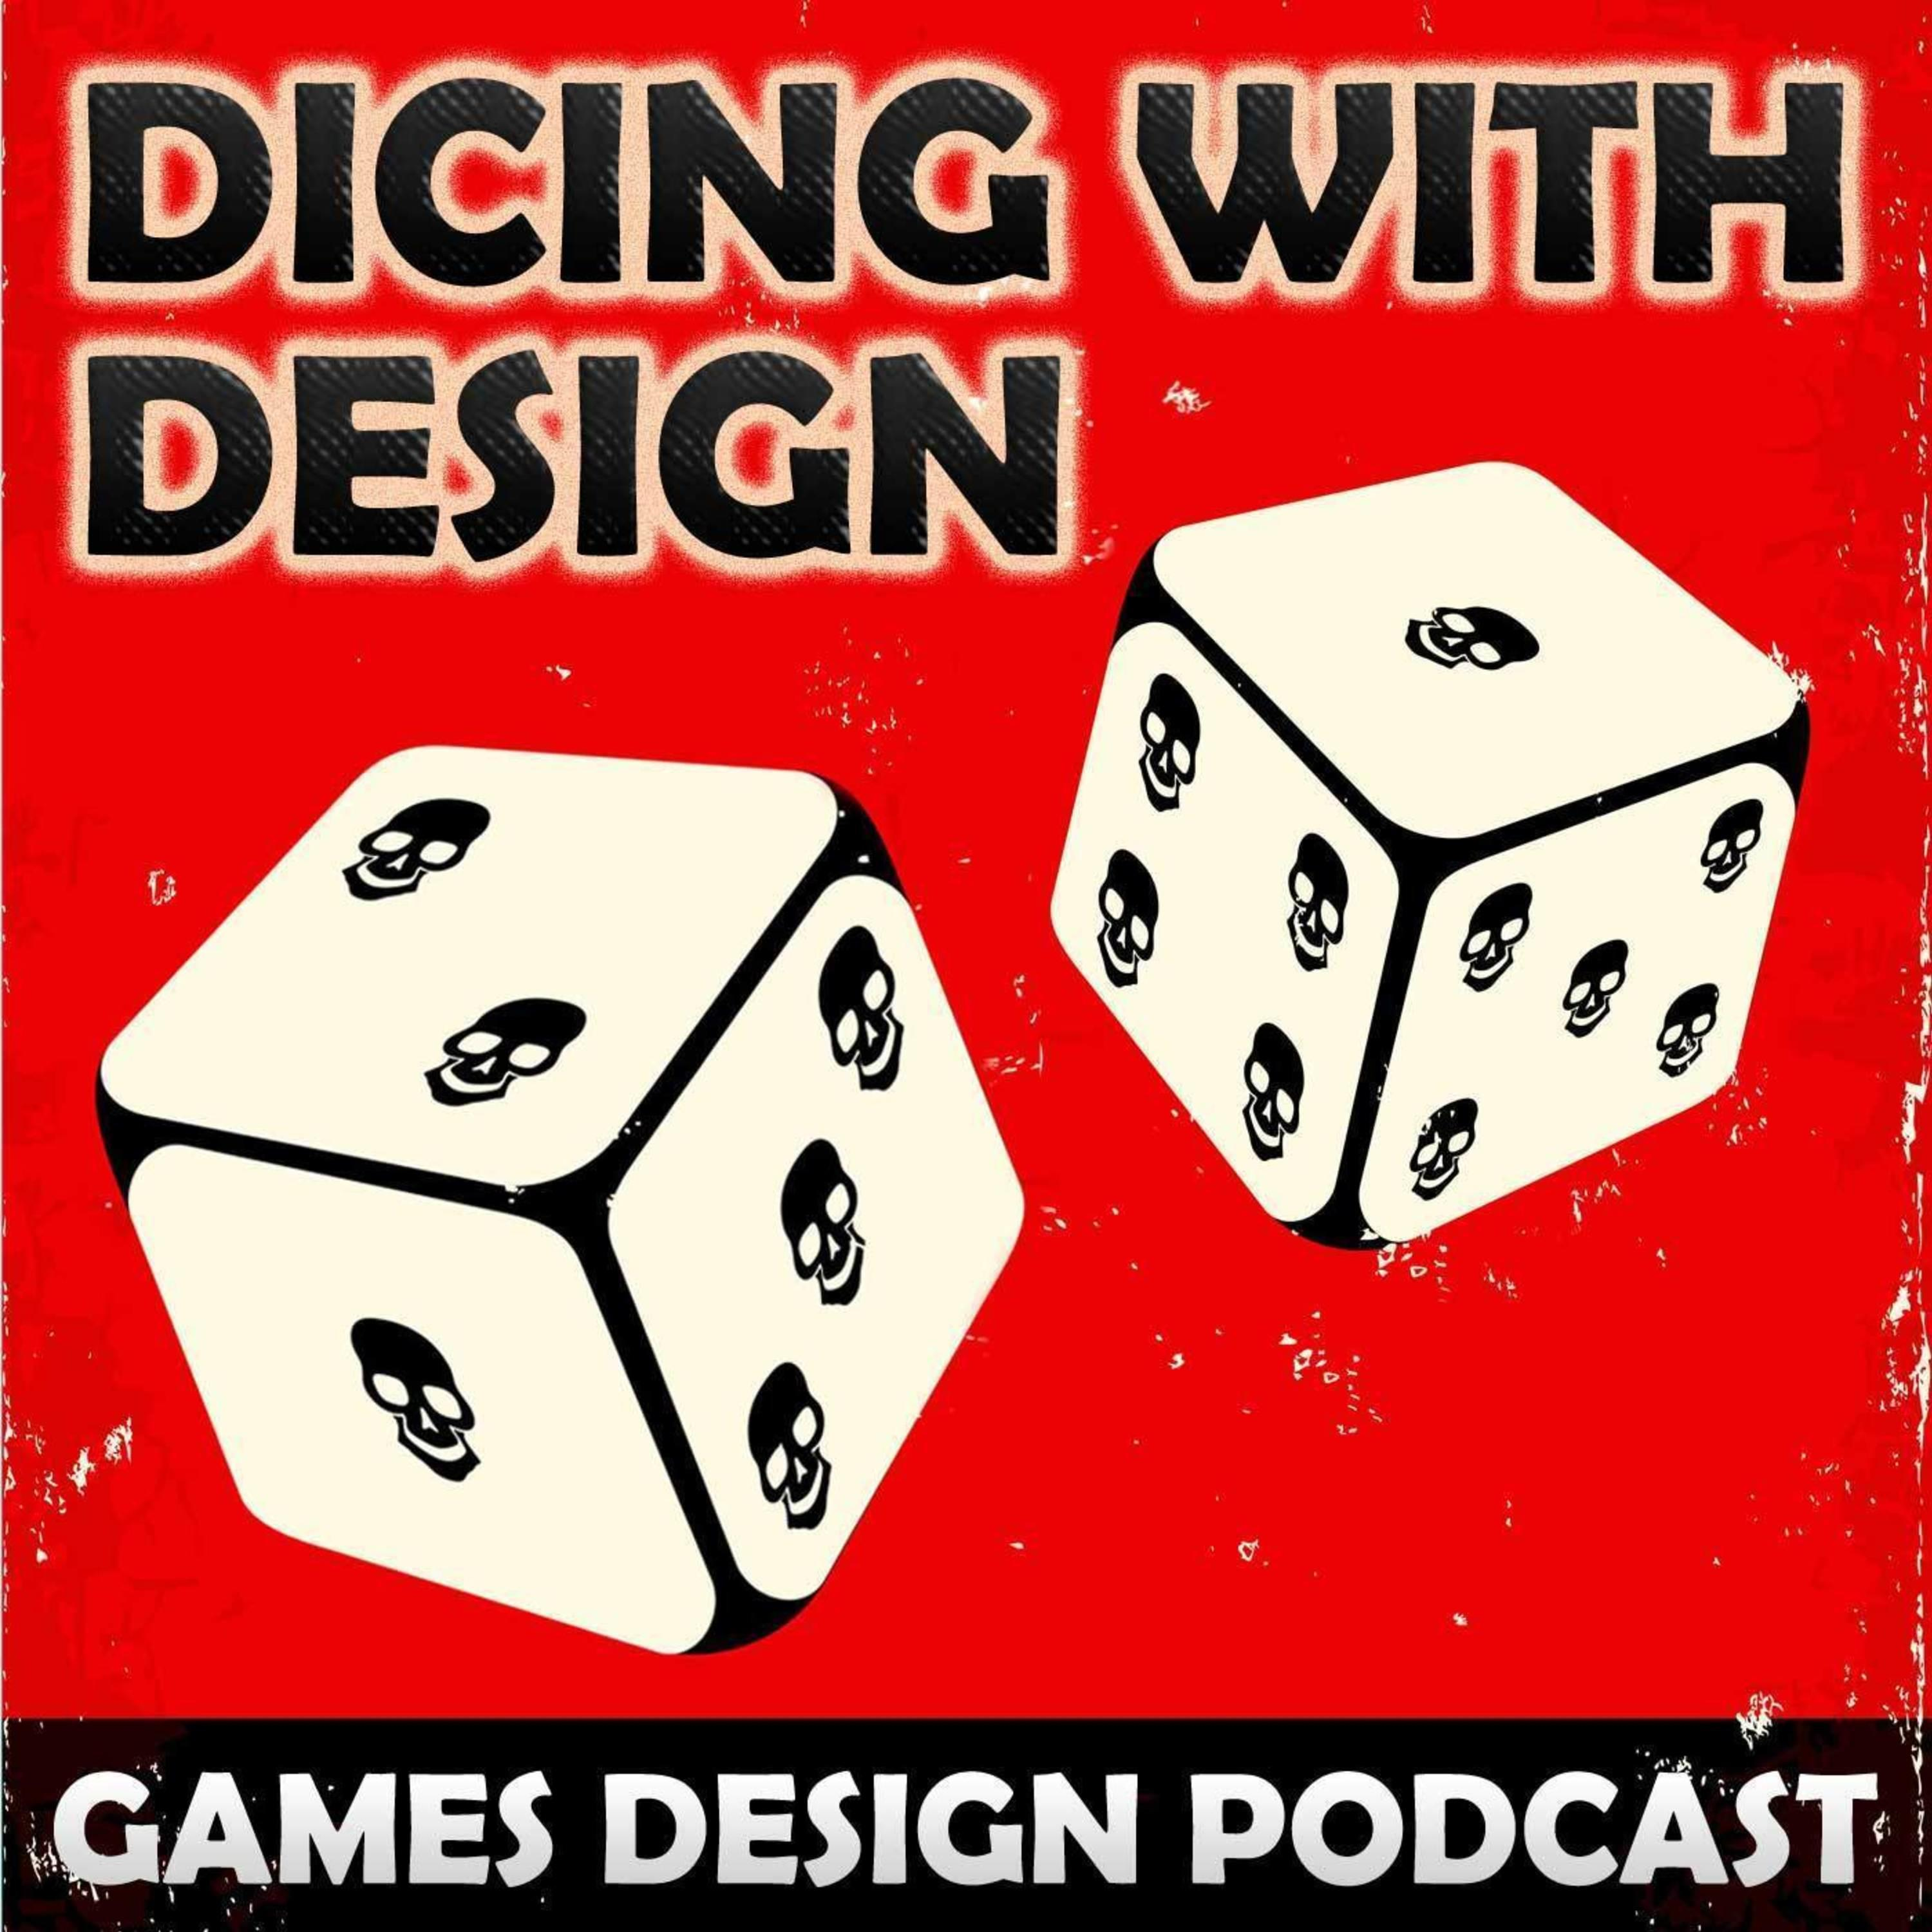 Dicing With Design: Role Playing, Wargaming, Card games & Board Game Design